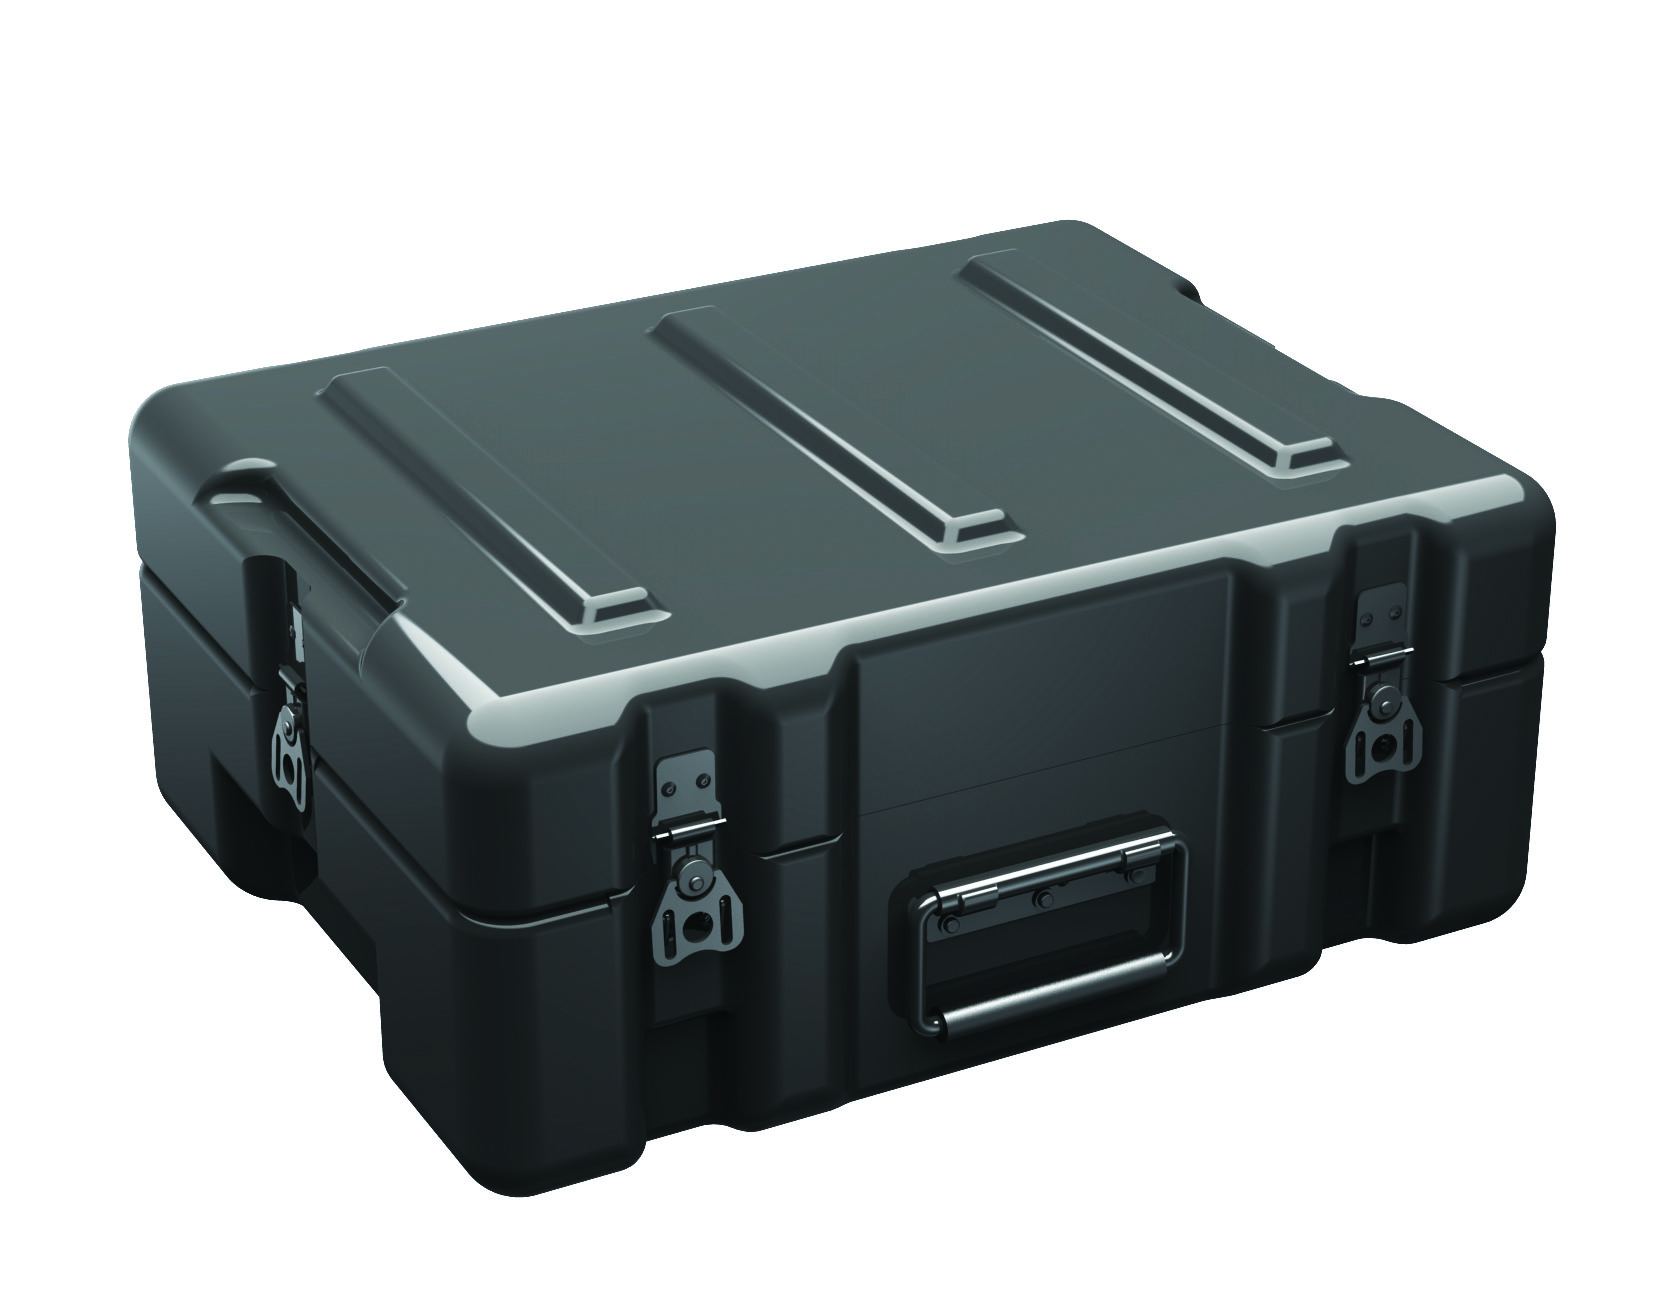 CL1713-0403 - CL1713-0403 Single Lid Flat Shipping Case